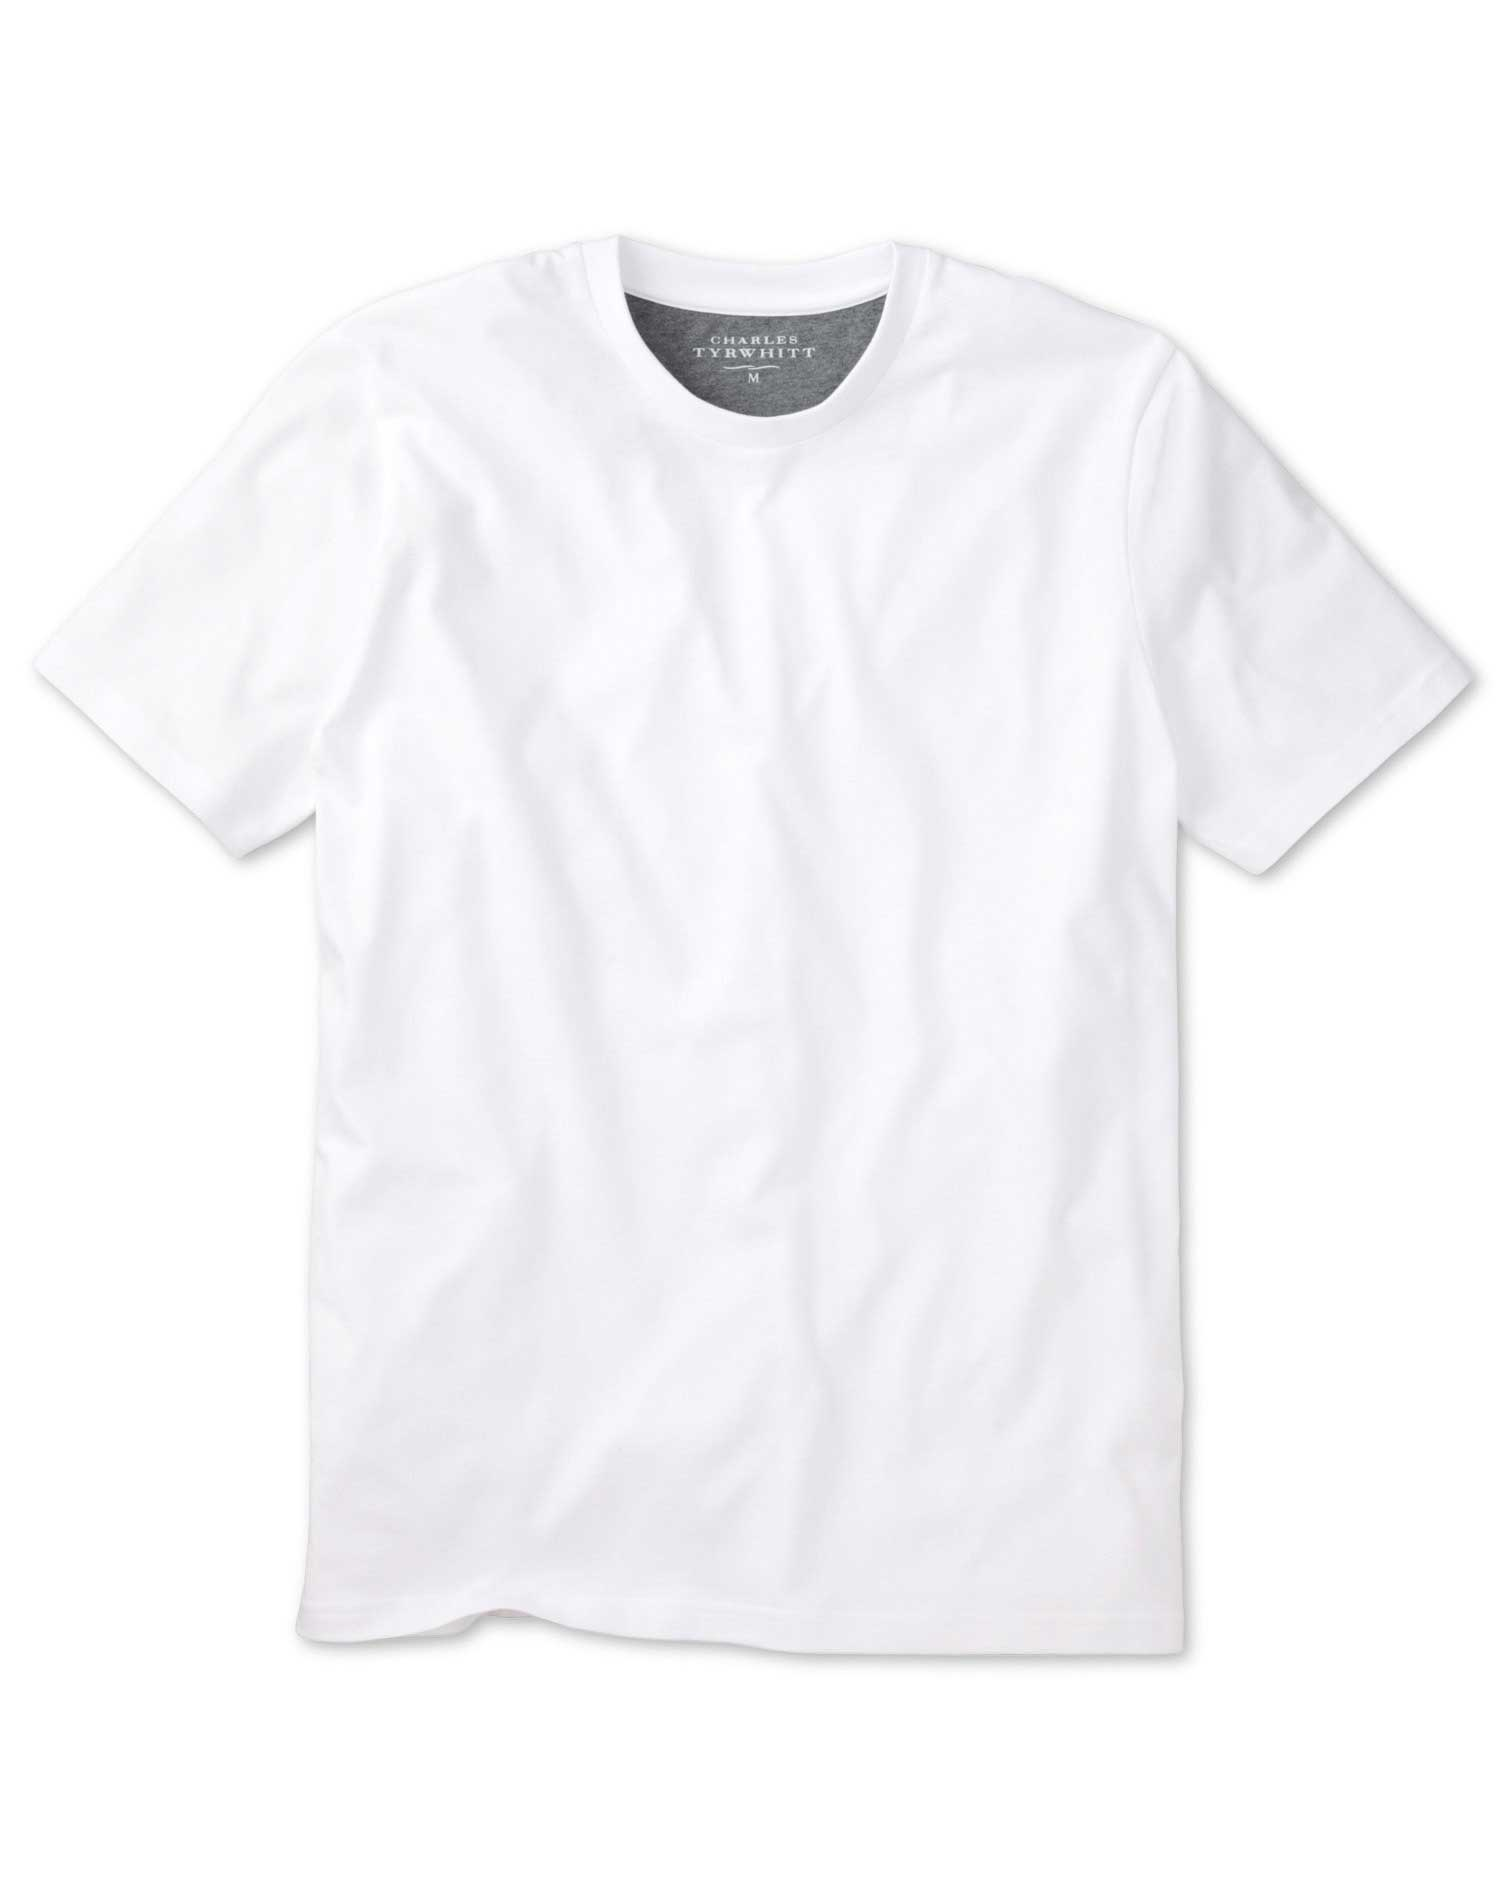 Tutorial how to create a realistic t shirt mockup using for The best plain white t shirts